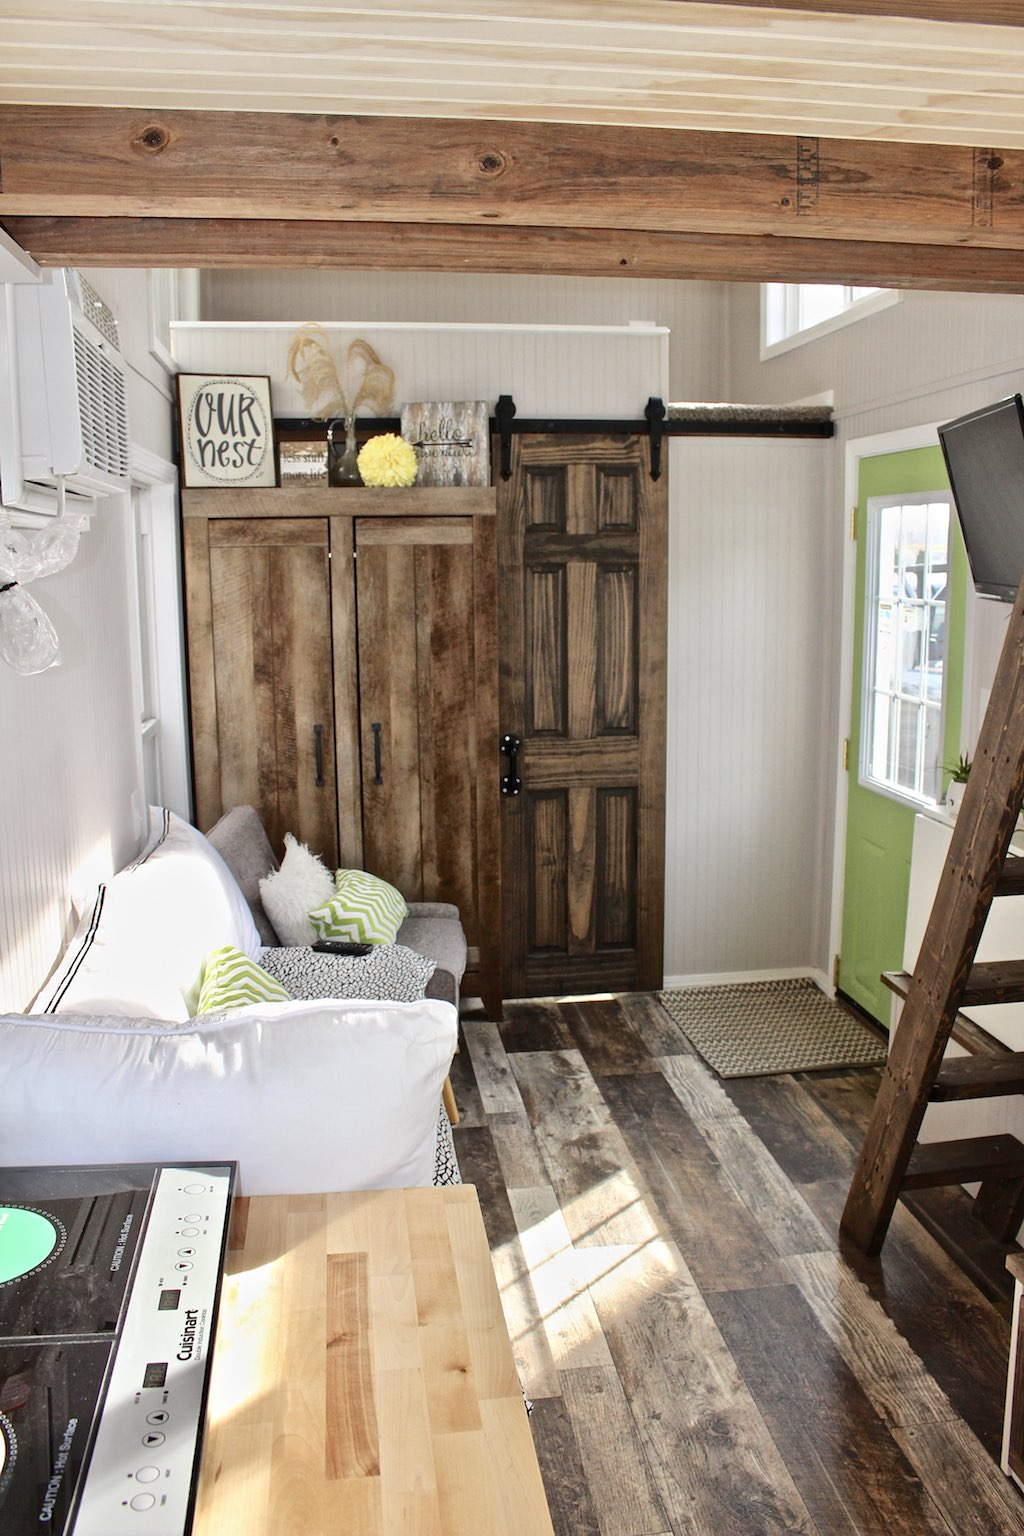 chic-shack-lime-green-mini-mansions-tiny-homes-14